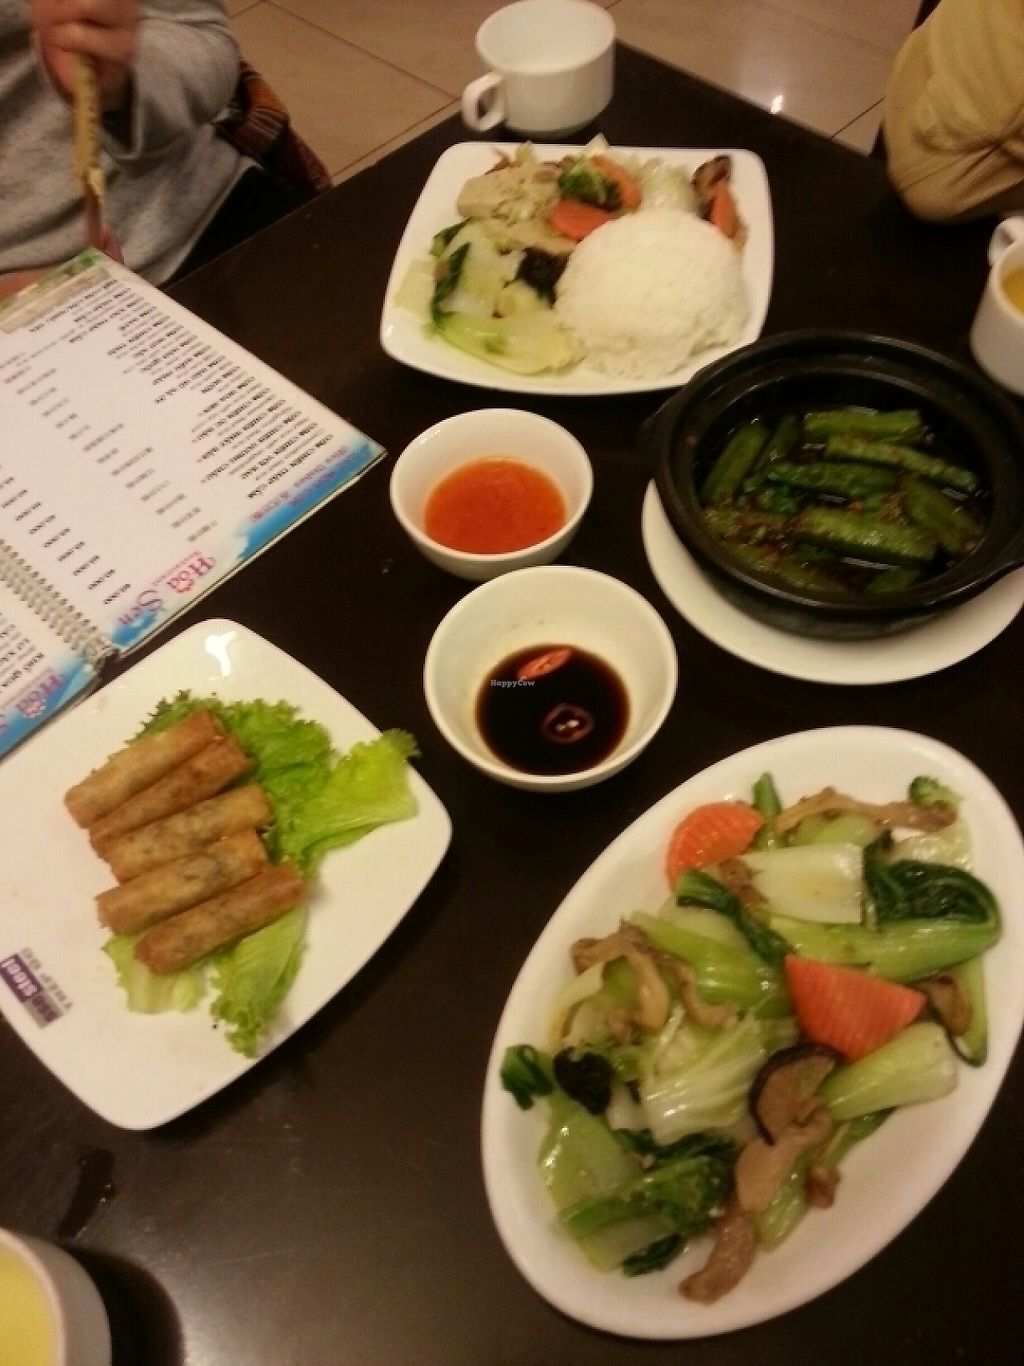 """Photo of Hoa Sen - Nha Hang Chay  by <a href=""""/members/profile/WillChadwick"""">WillChadwick</a> <br/>braised veg with rice, fried okra, spring rolls, pak choi with mushrooms <br/> May 29, 2017  - <a href='/contact/abuse/image/18728/263643'>Report</a>"""